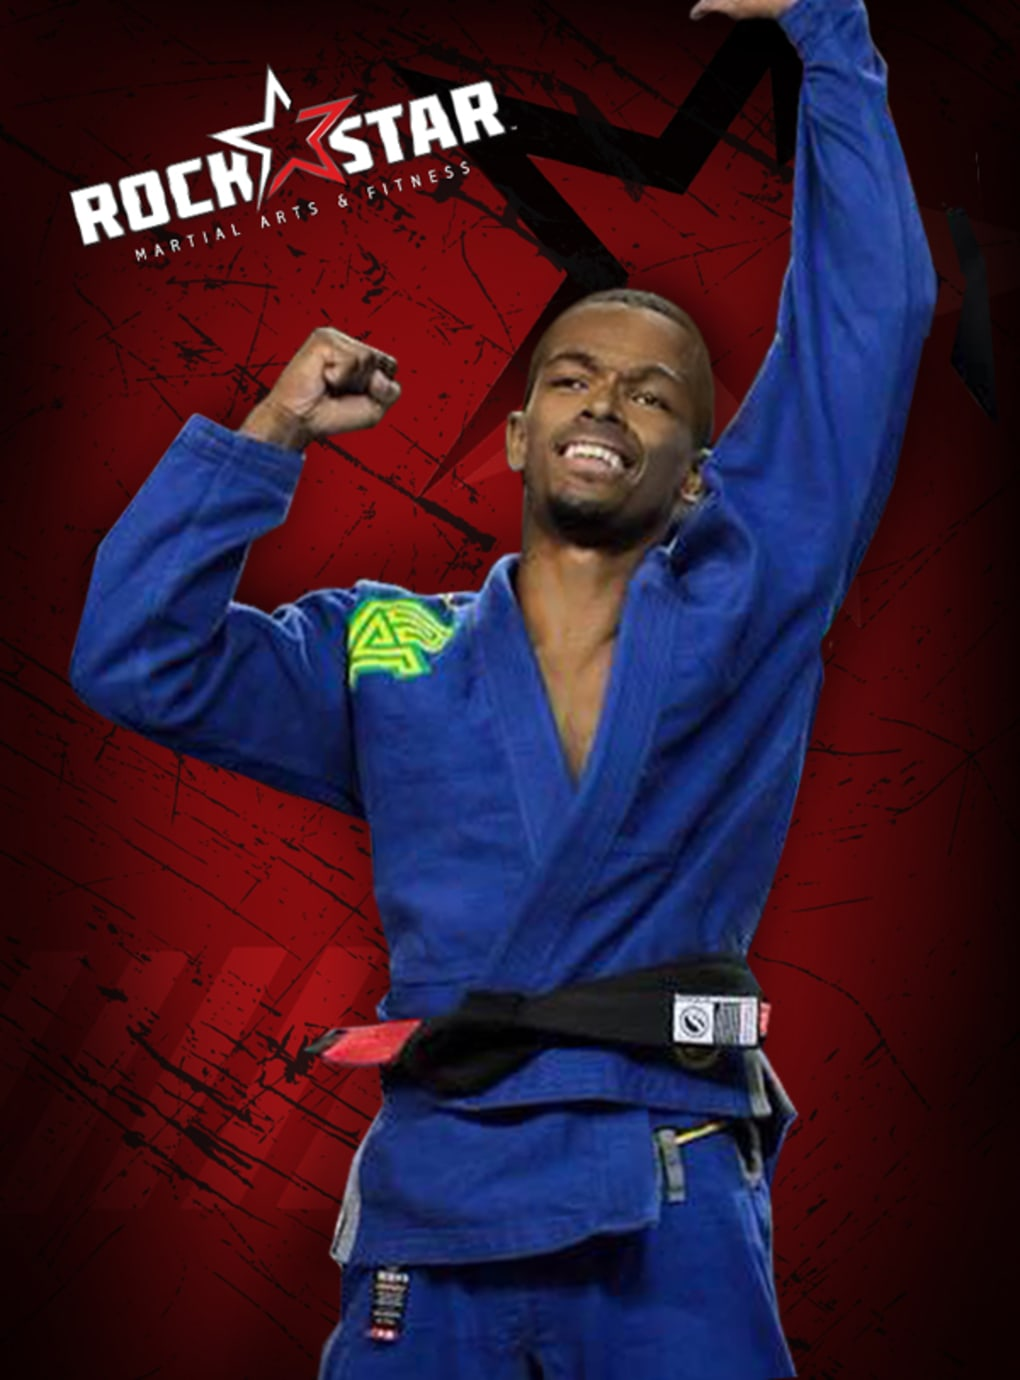 Kids Martial Arts in Frisco - Rockstar Martial Arts and Fitness - Why it's important to train BJJ with a World Champion